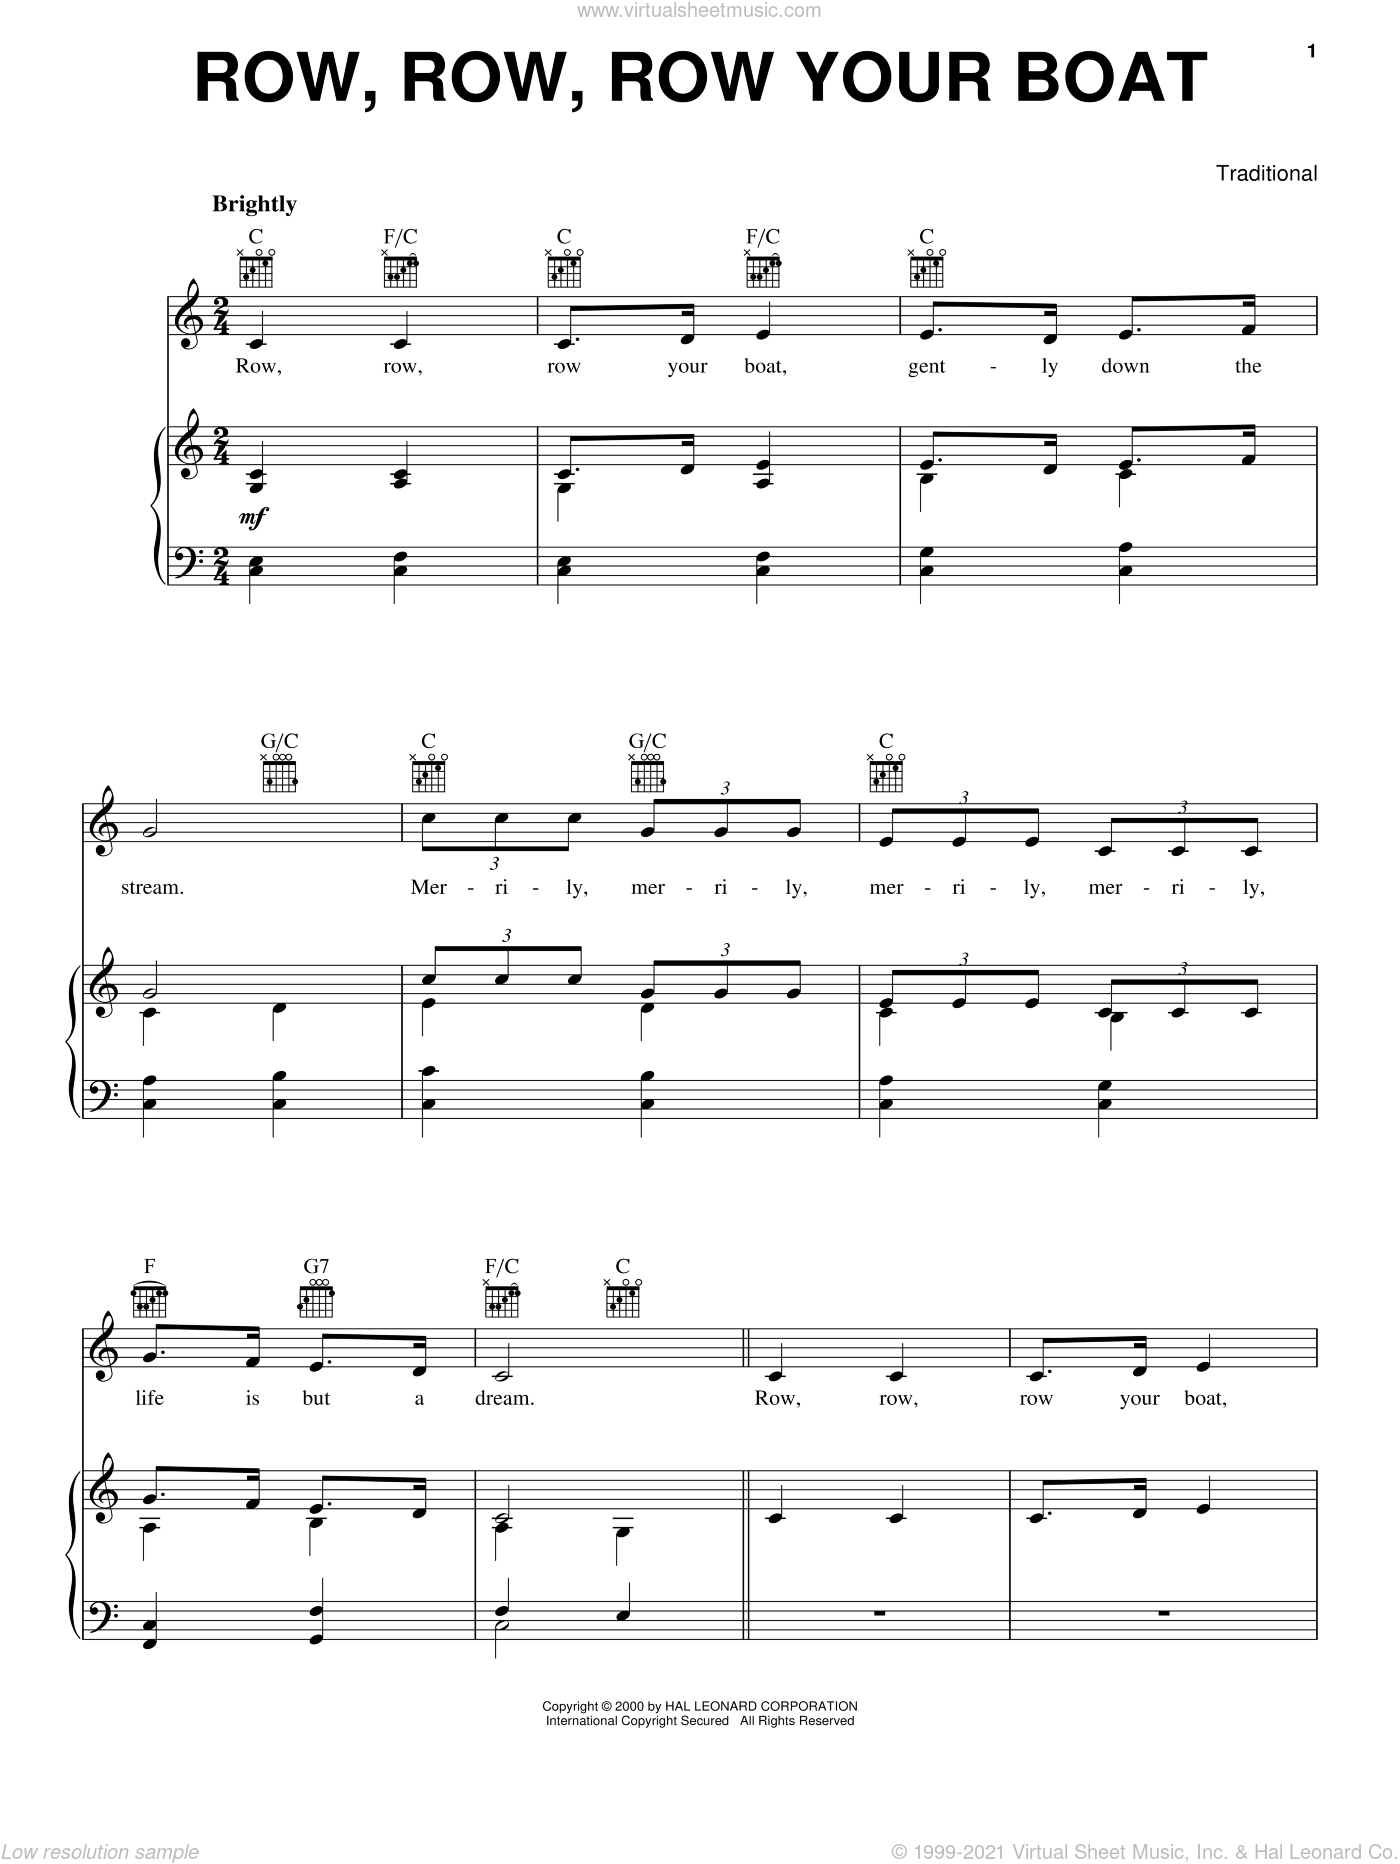 Row, Row, Row Your Boat sheet music for voice, piano or guitar, intermediate skill level